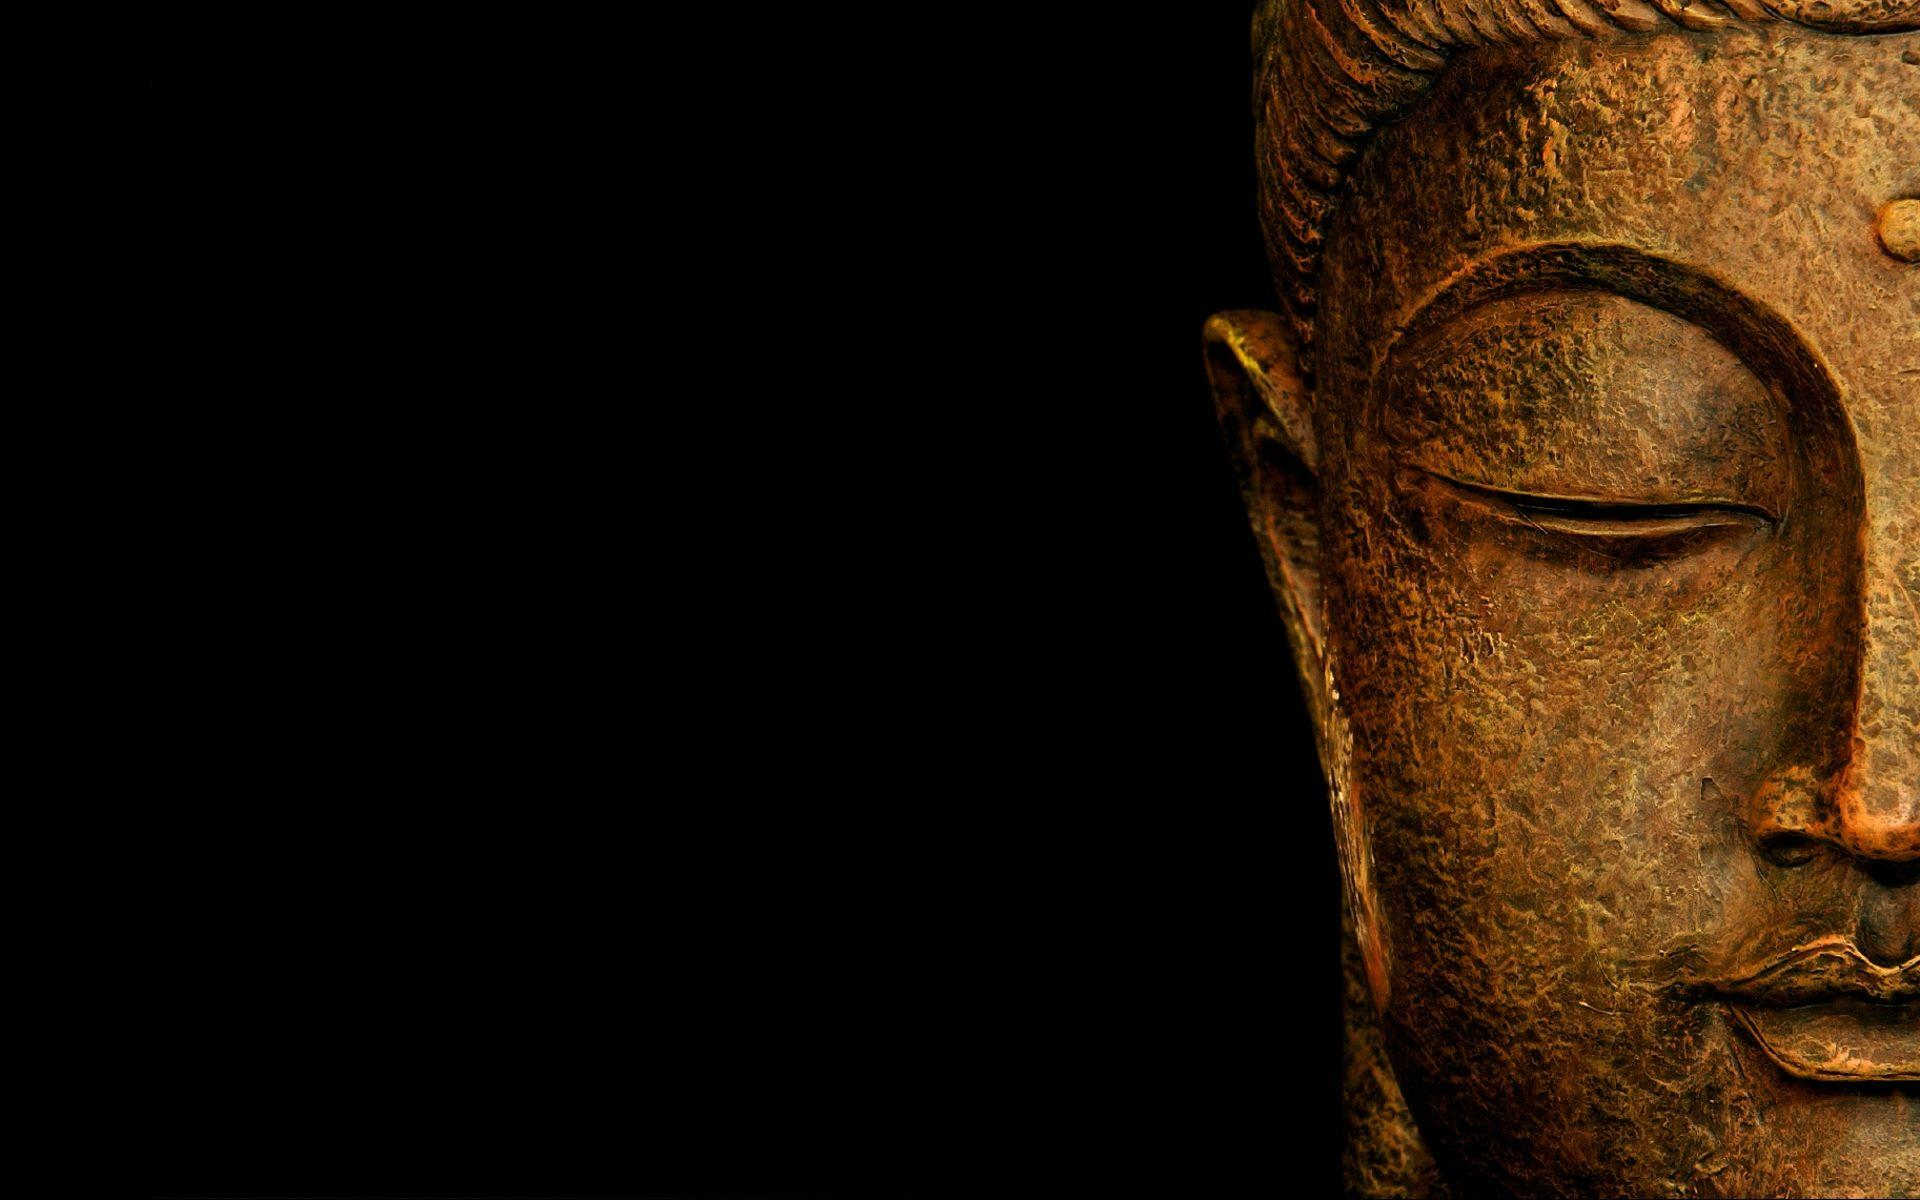 Buddha Wallpaper – The Most Popular Wallpaper for iPhone and iPad